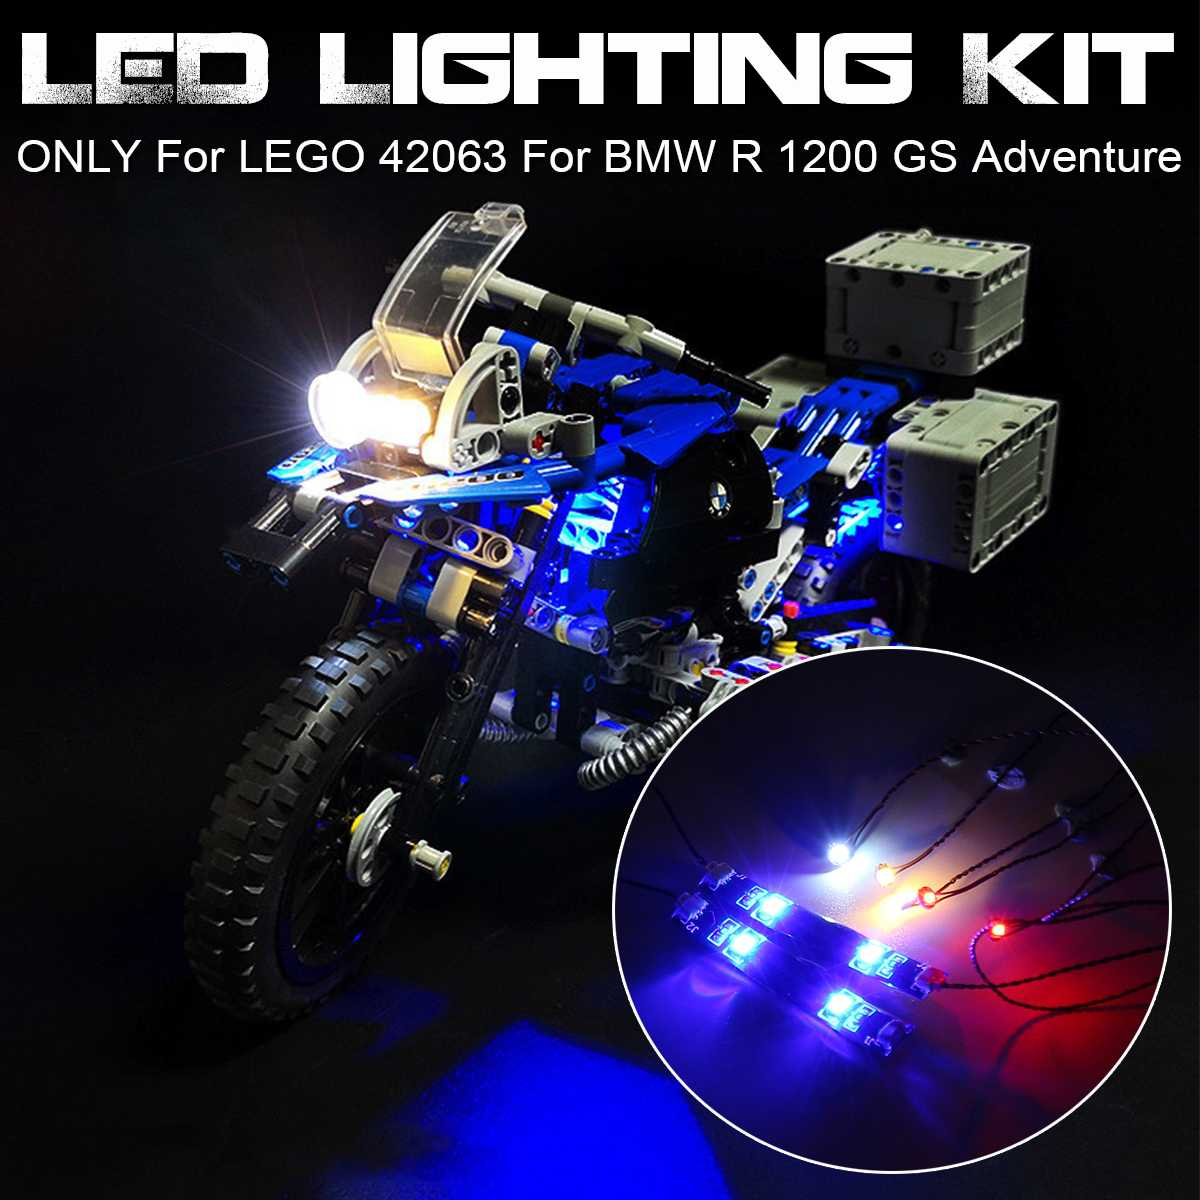 LED Light Lighting Kit for <font><b>LEGO</b></font> for <font><b>42063</b></font> Technic Series for BMW R 1200 GS Adventure Motorcycles Blocks (Only Light Included) image